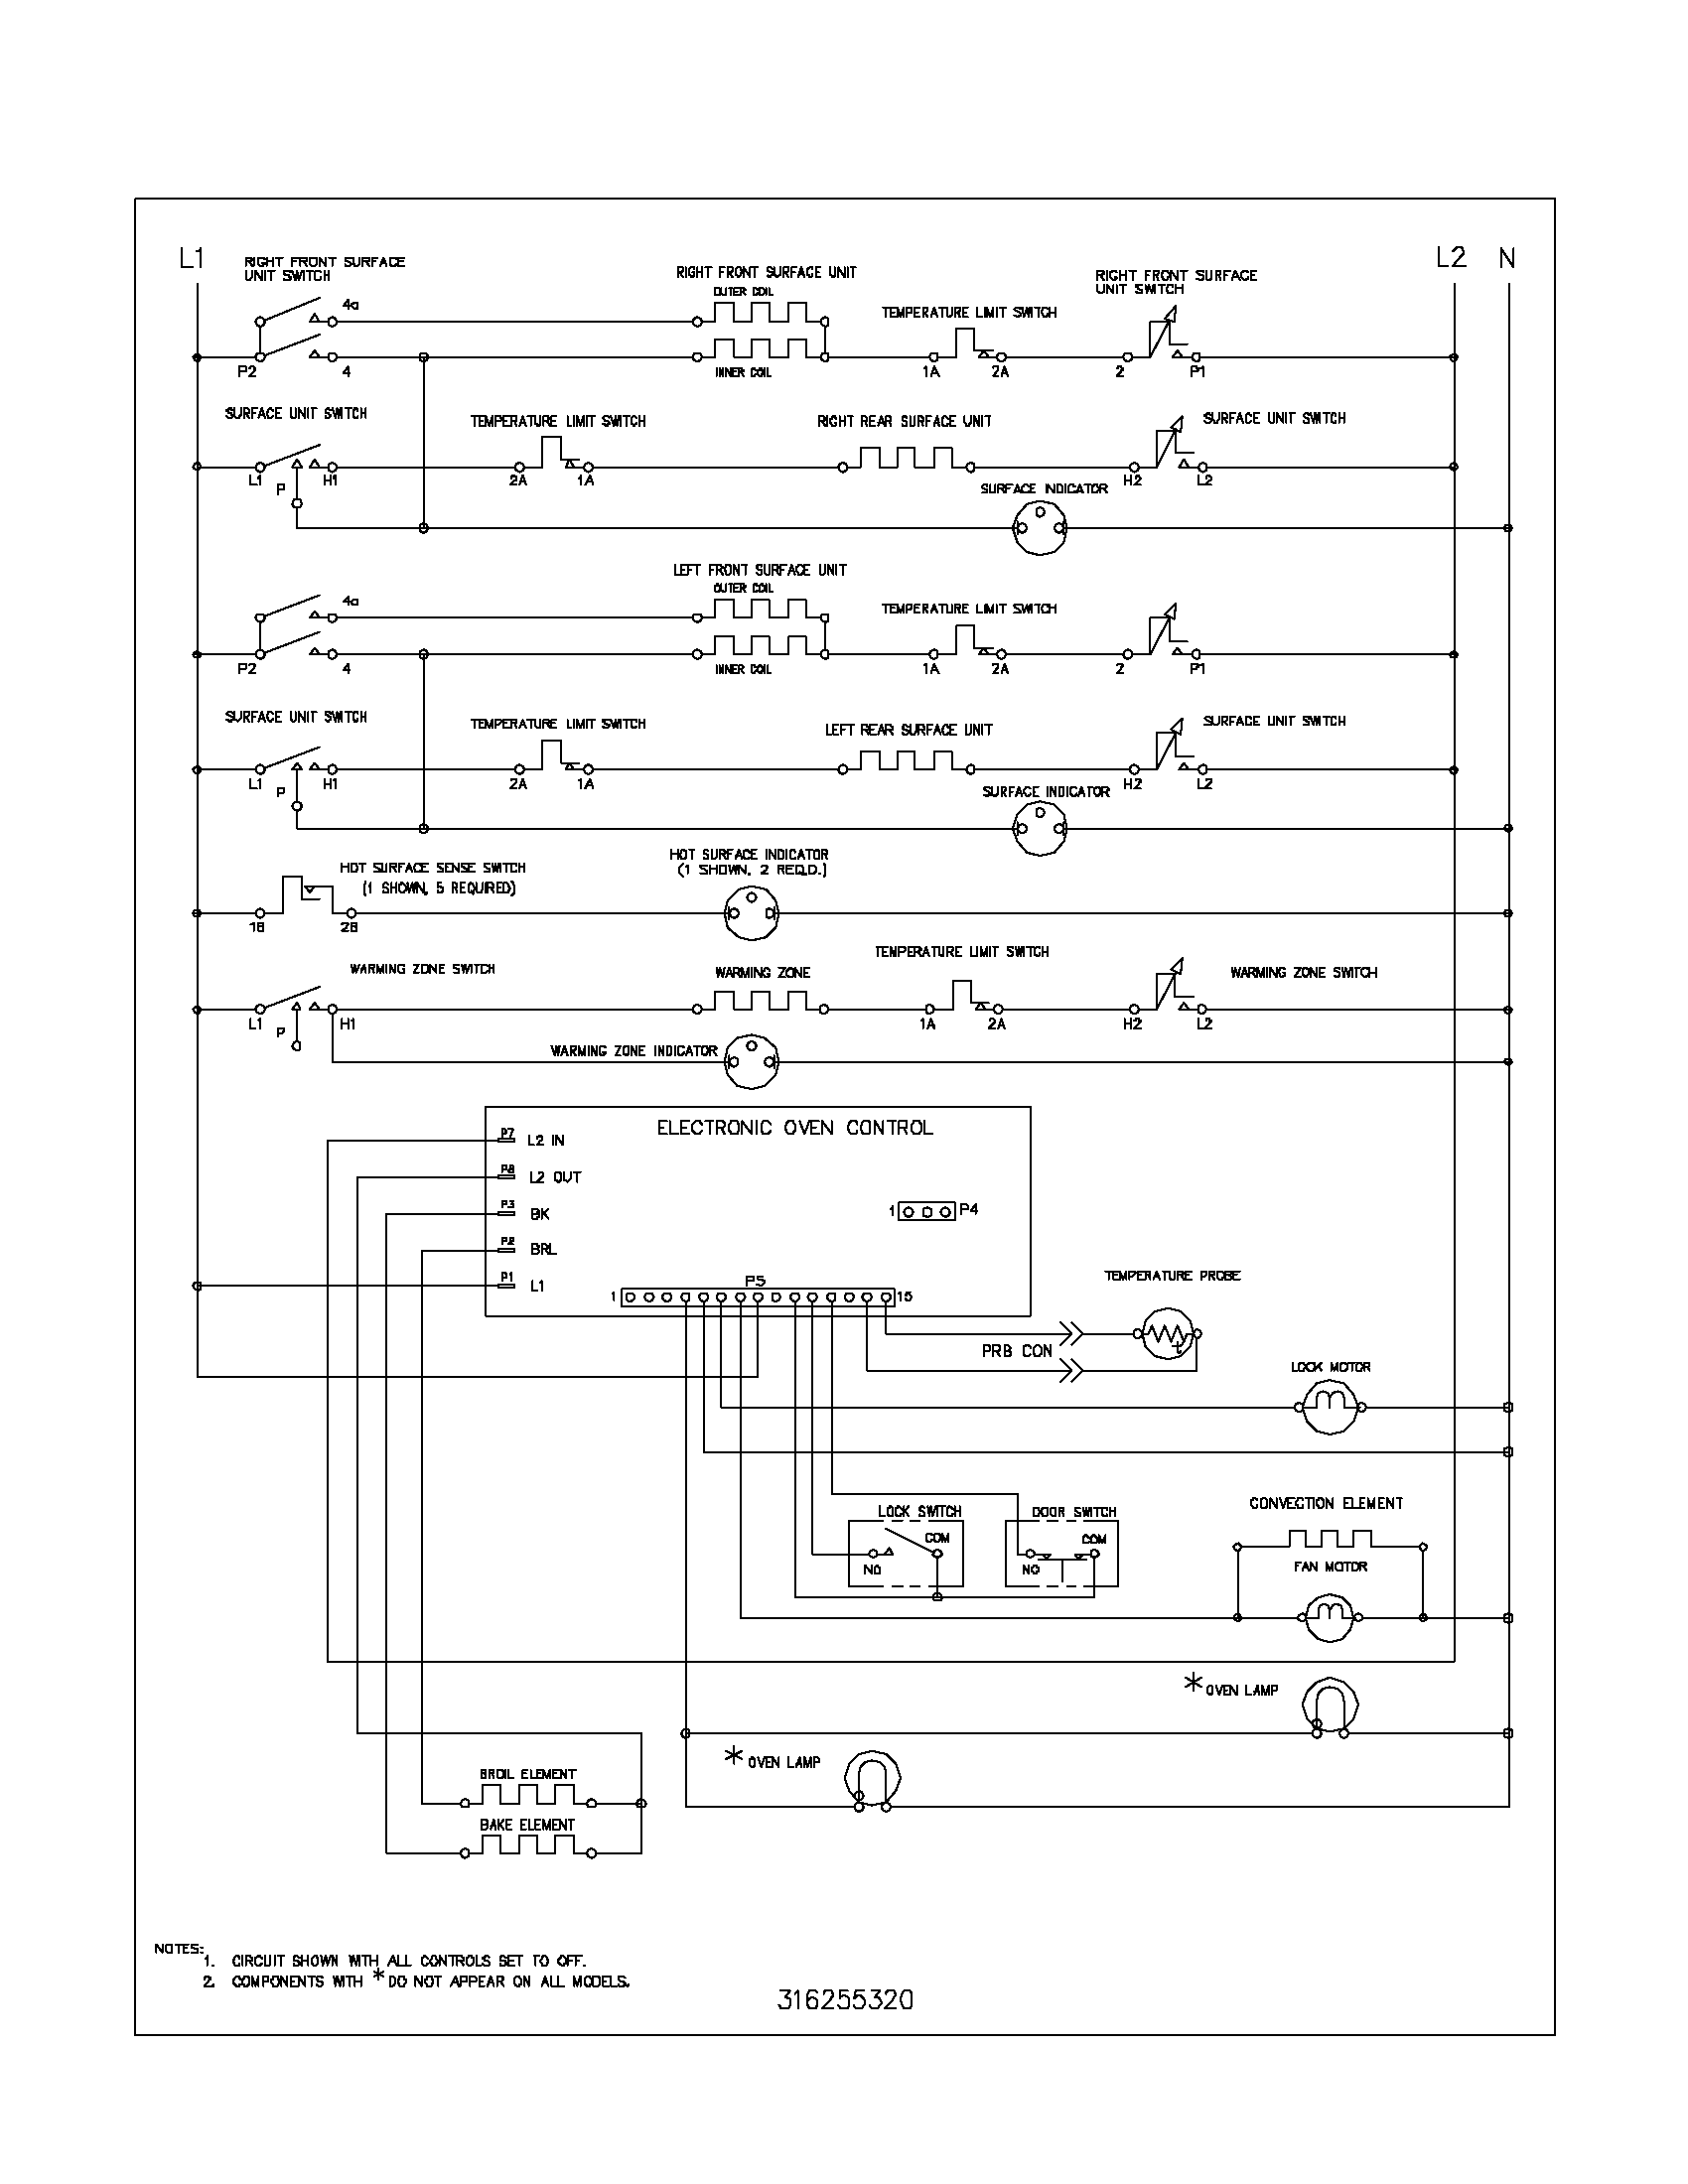 Wiring Diagram For Whirlpool Oven Diagrams With Electric Dryer Parts As Well Schematic Get Free Image Plug